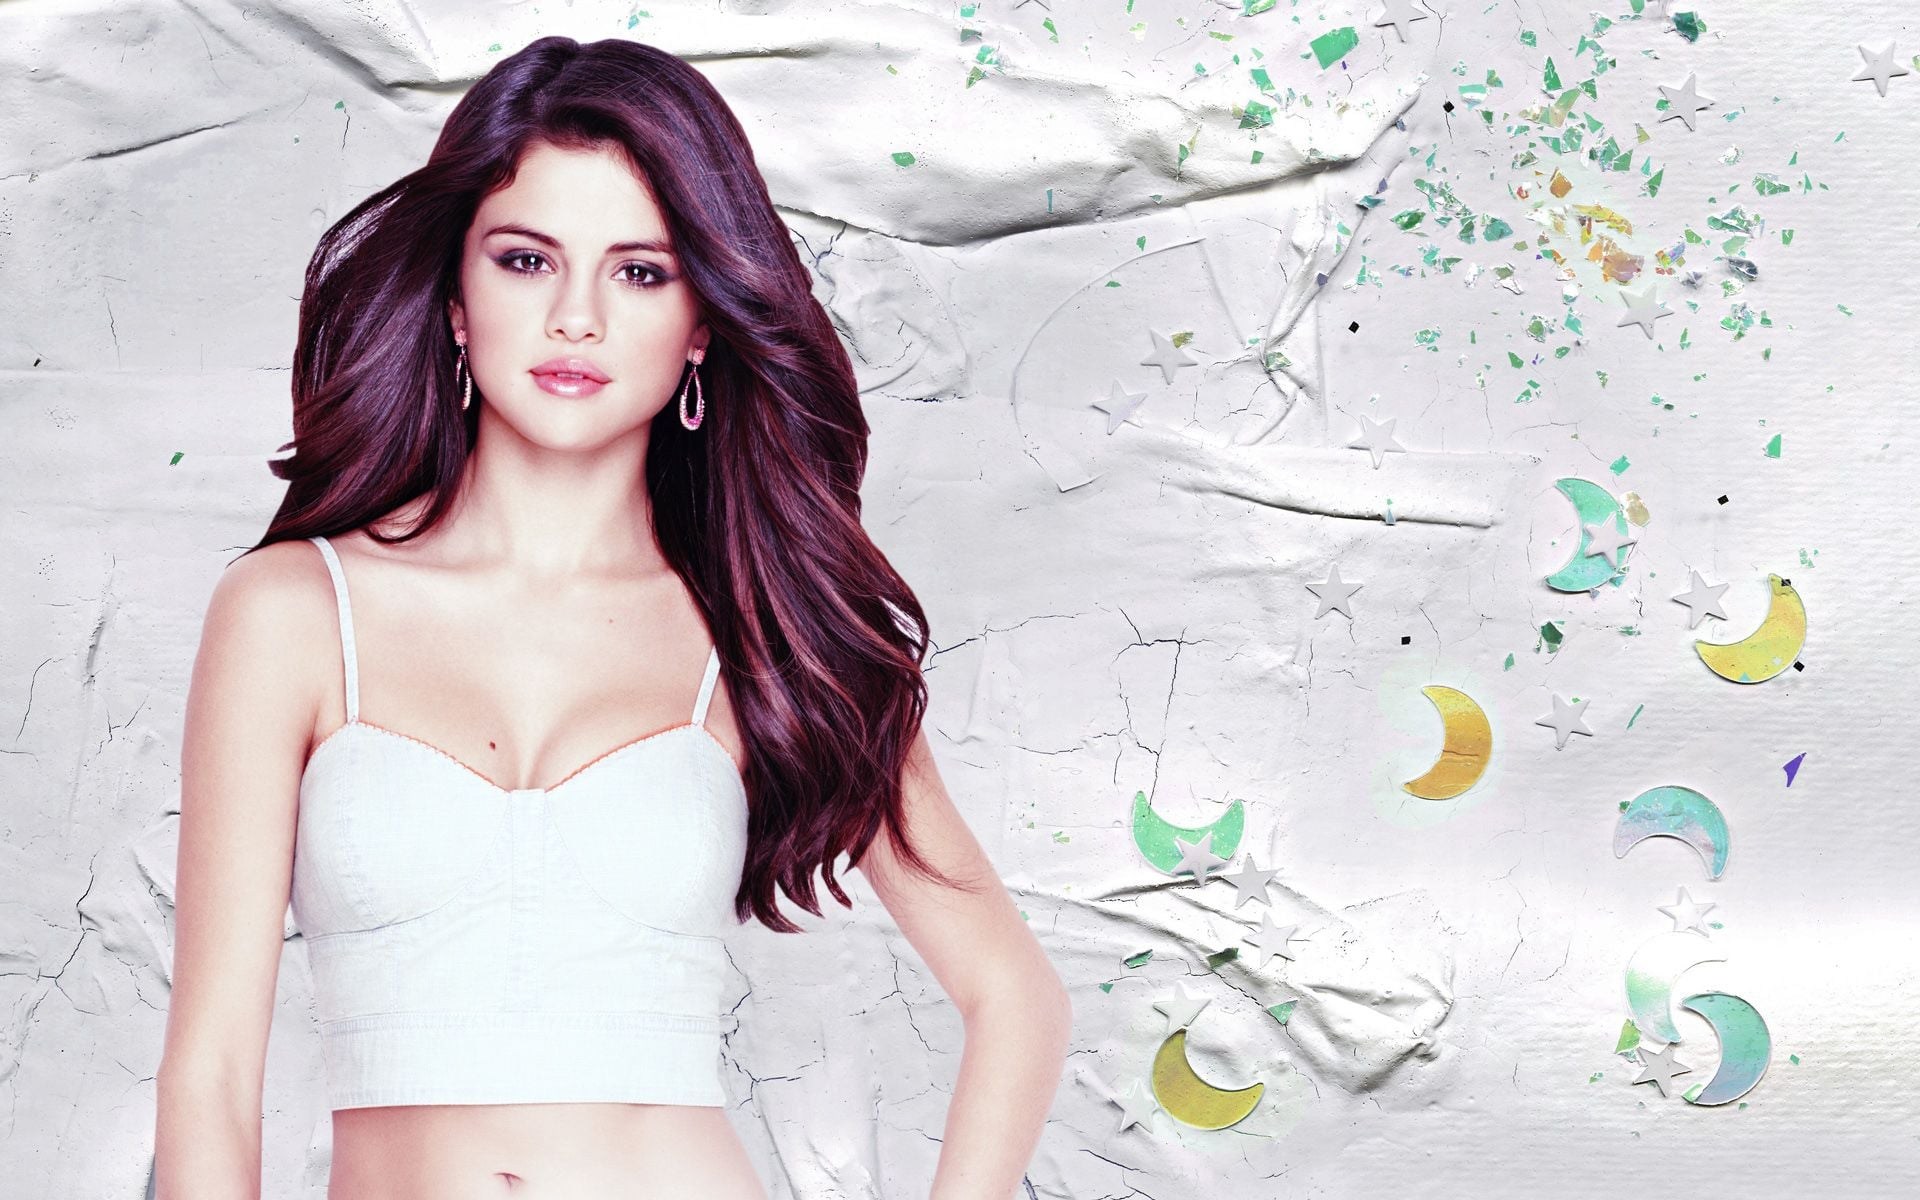 selena gomez abstract wallpaper - photo #1